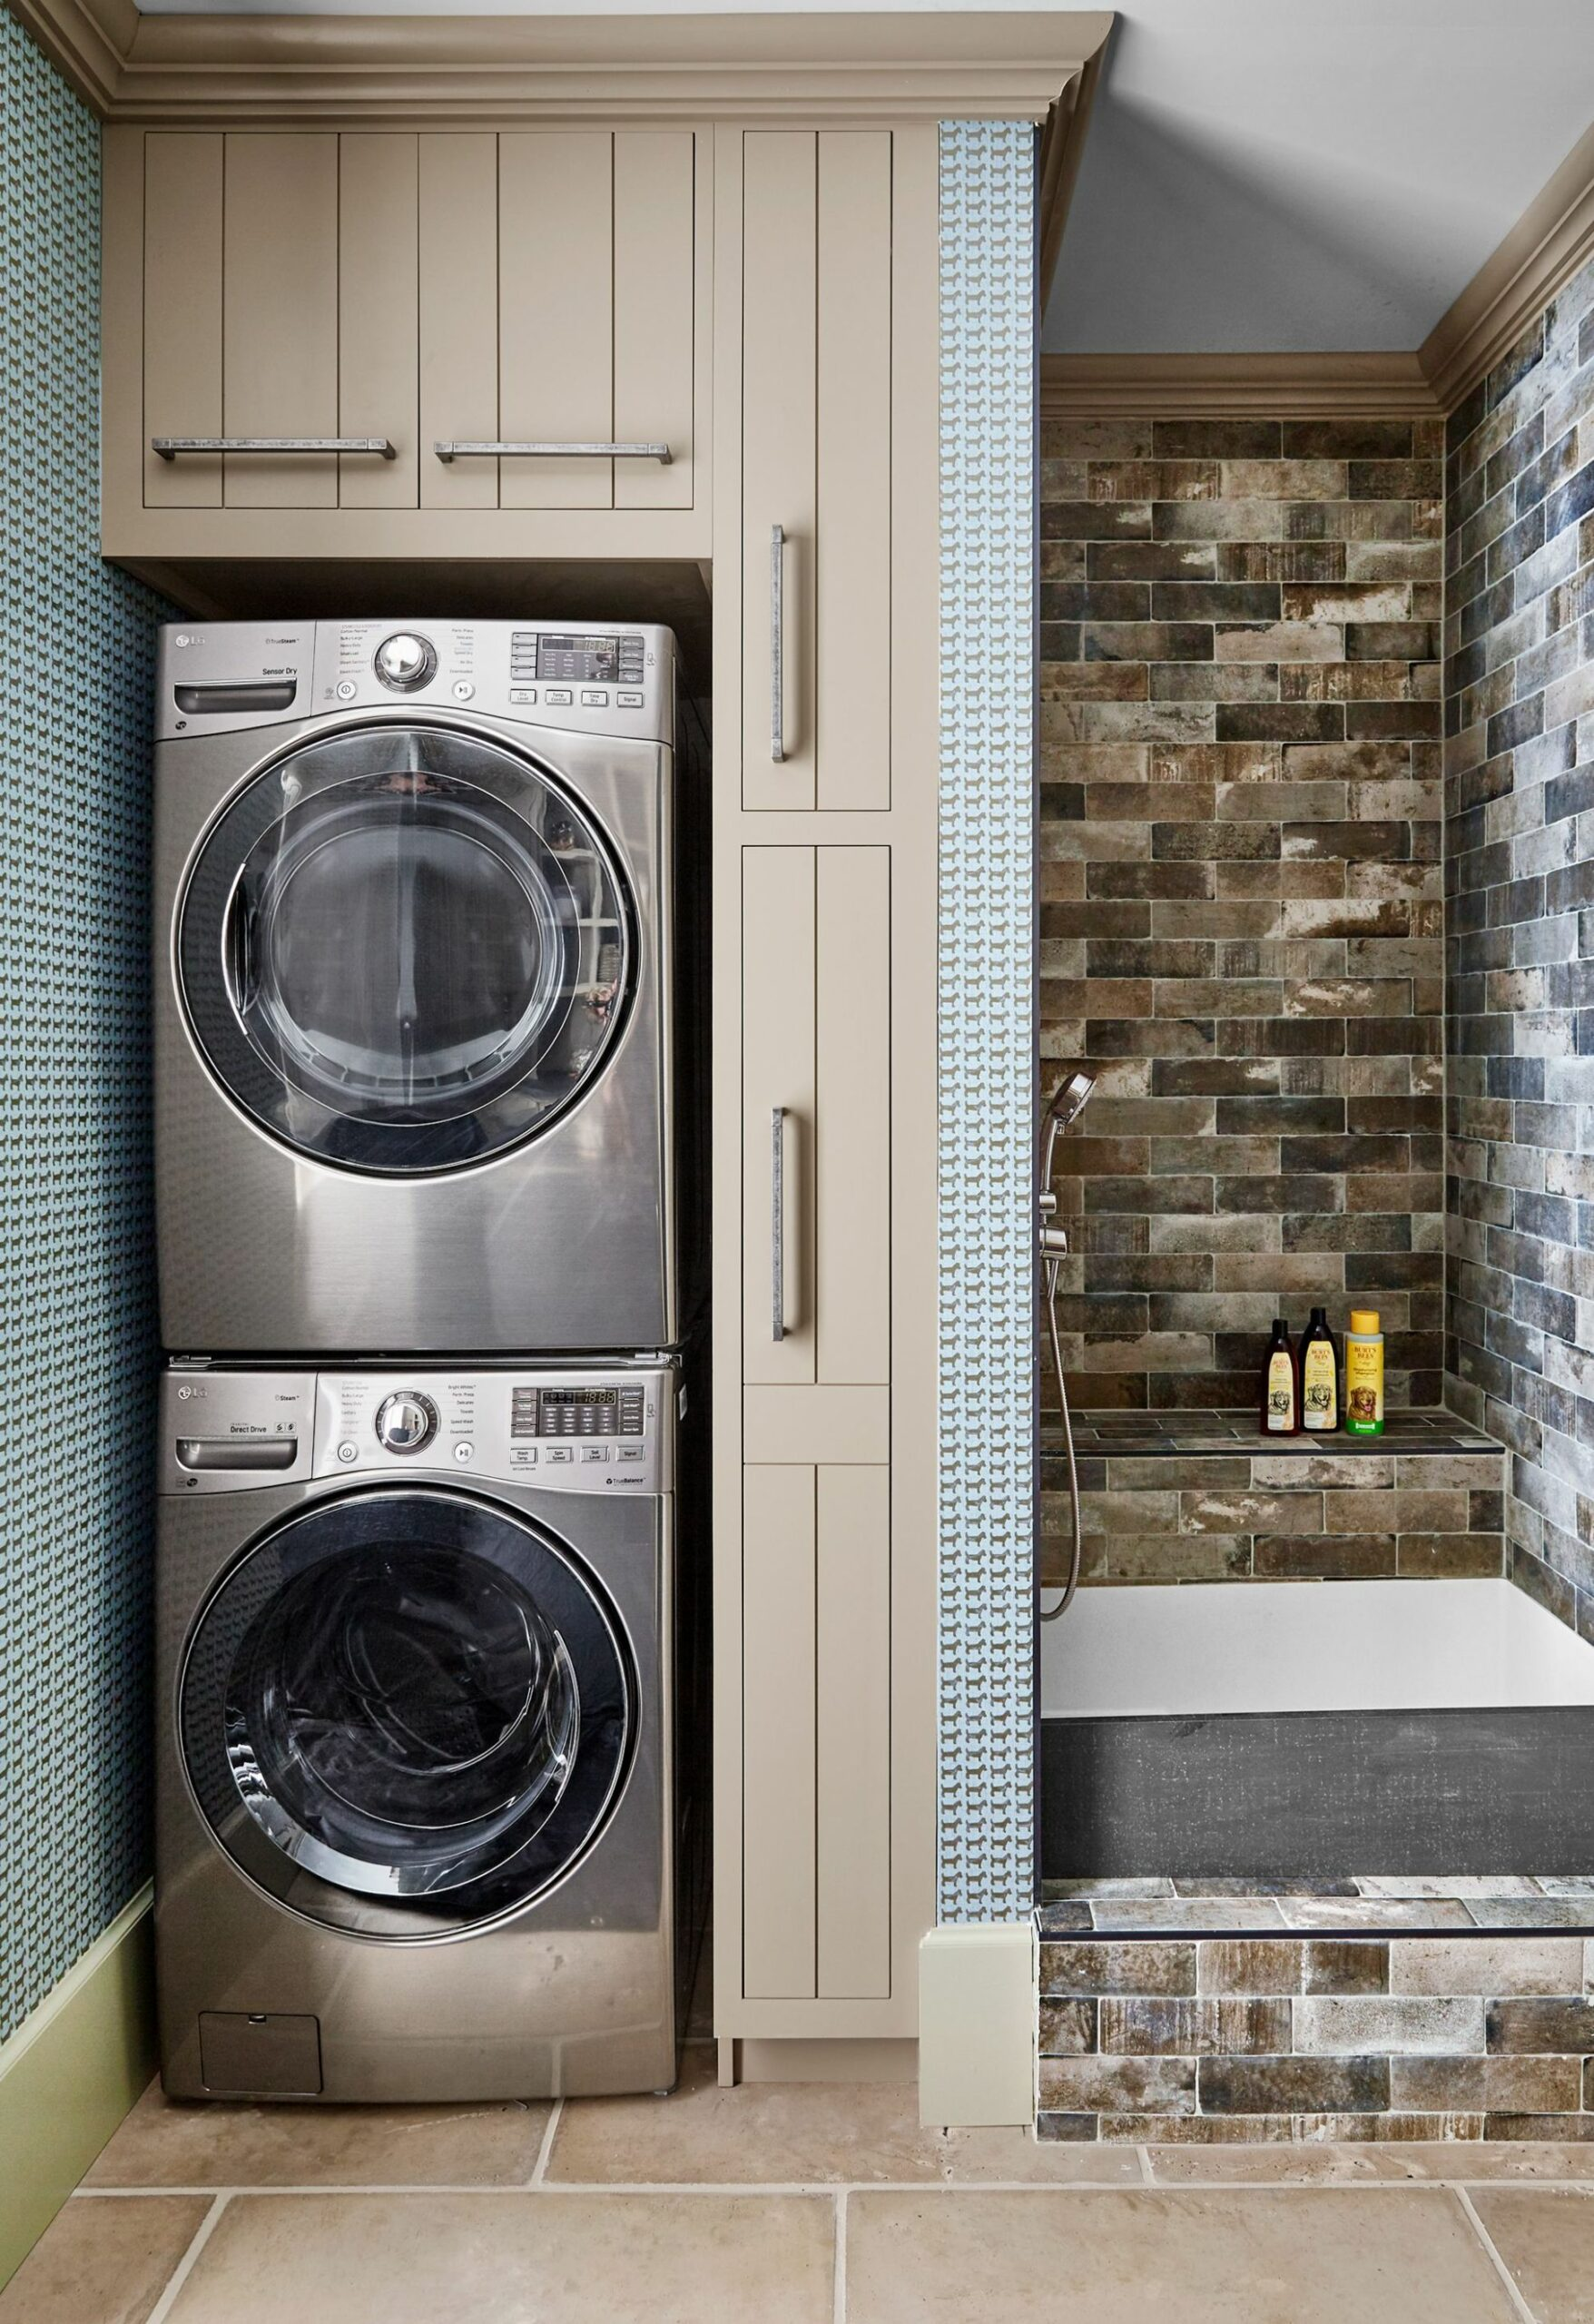 12 Small Laundry Room Ideas - Small Laundry Room Storage Tips - laundry room ideas pictures